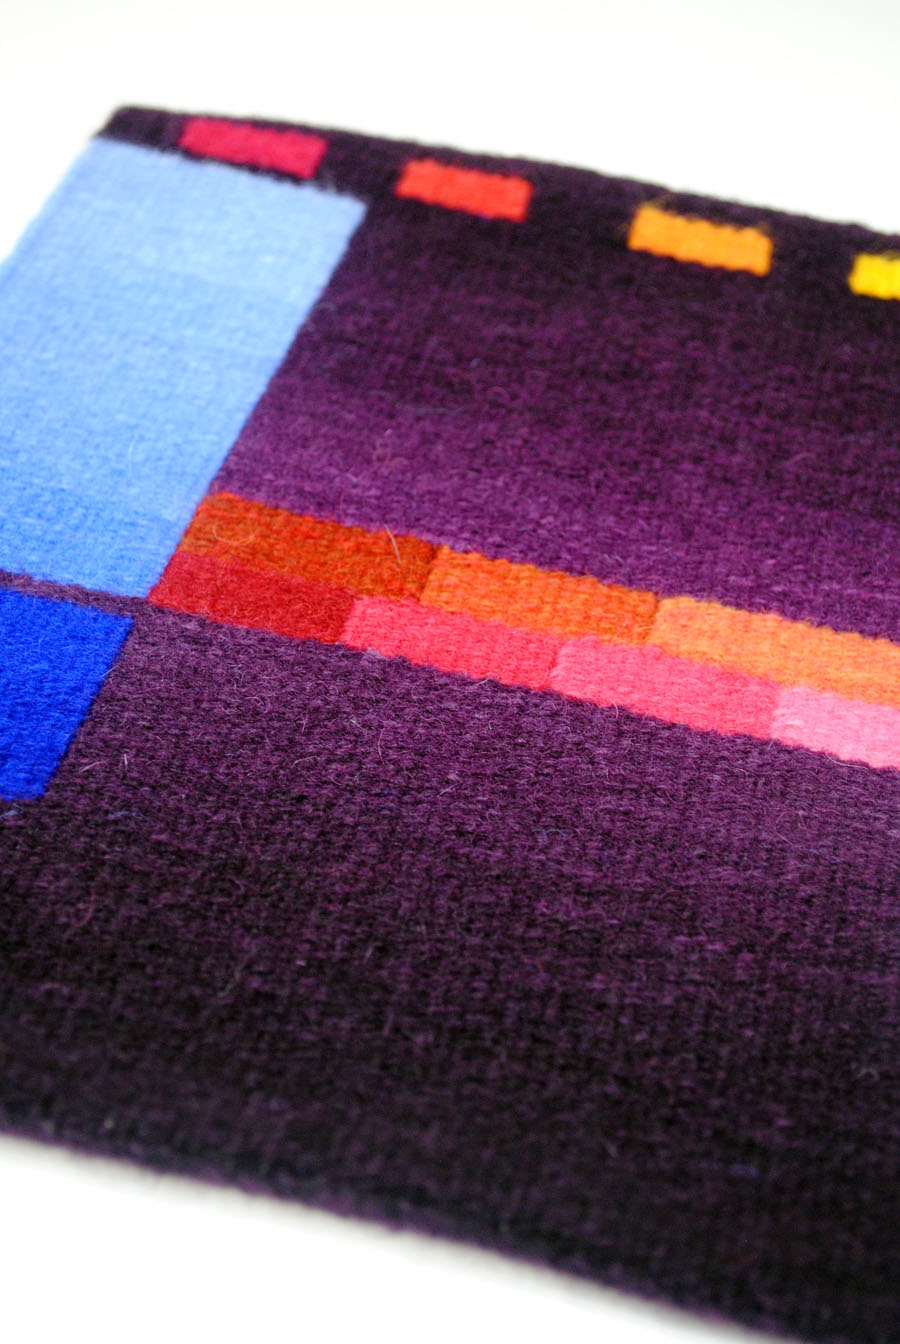 Woven sample for the client to show final choices of colors for Emergence VIII in woven form.